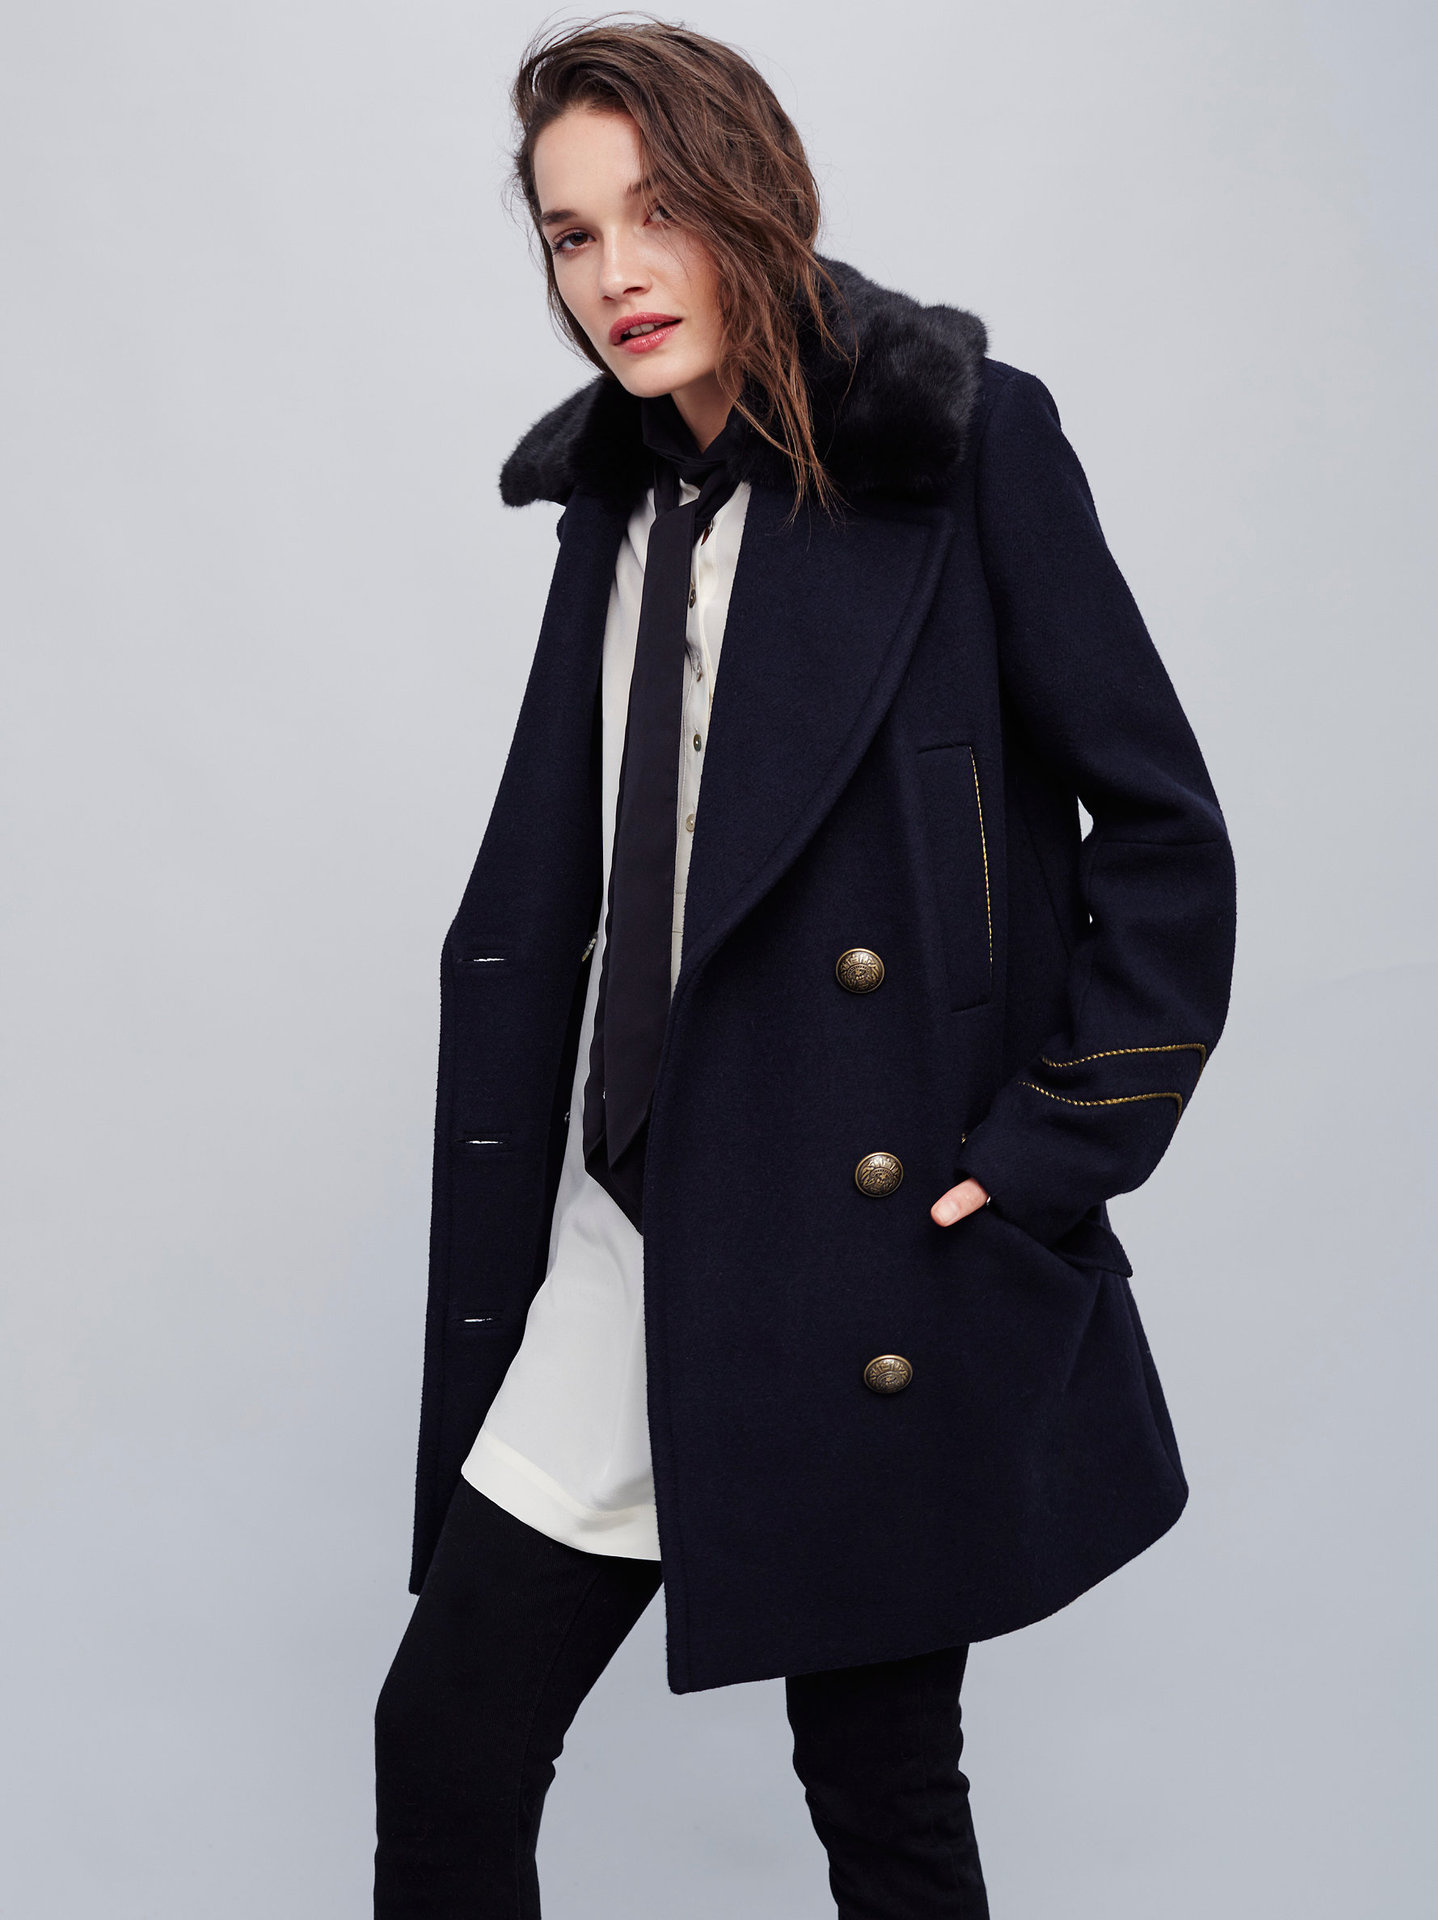 2018 NEW hot double breasted wool long winter jackets womens A-line slim casual blends pockets fashion wool coats thick coats